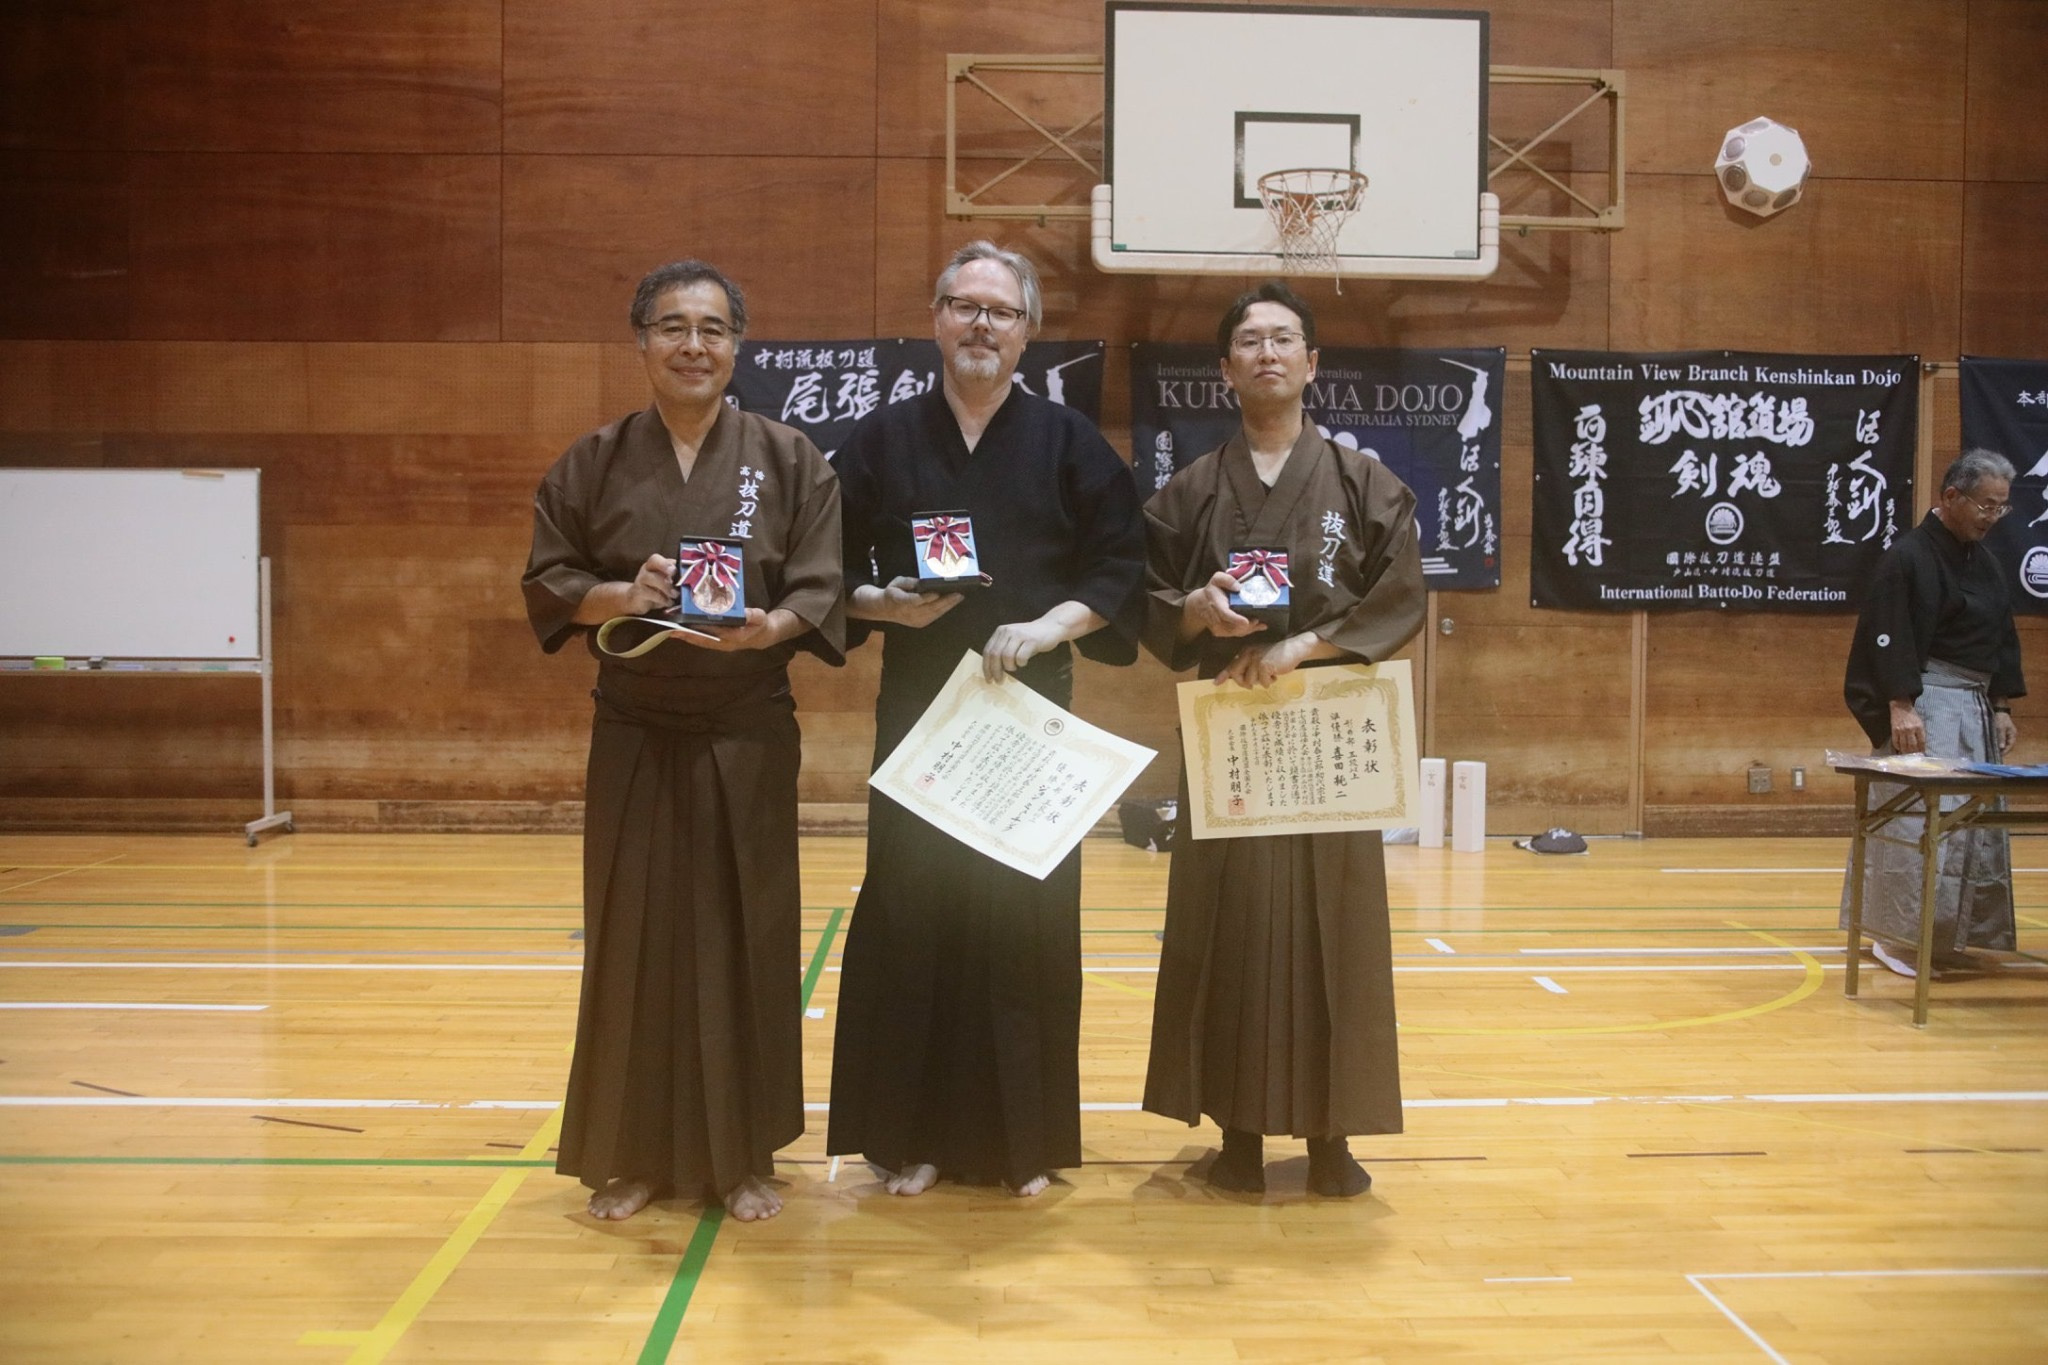 Tex with 1st place in Godan and above kata. You can see our new Dojo flag in the background - Nice!